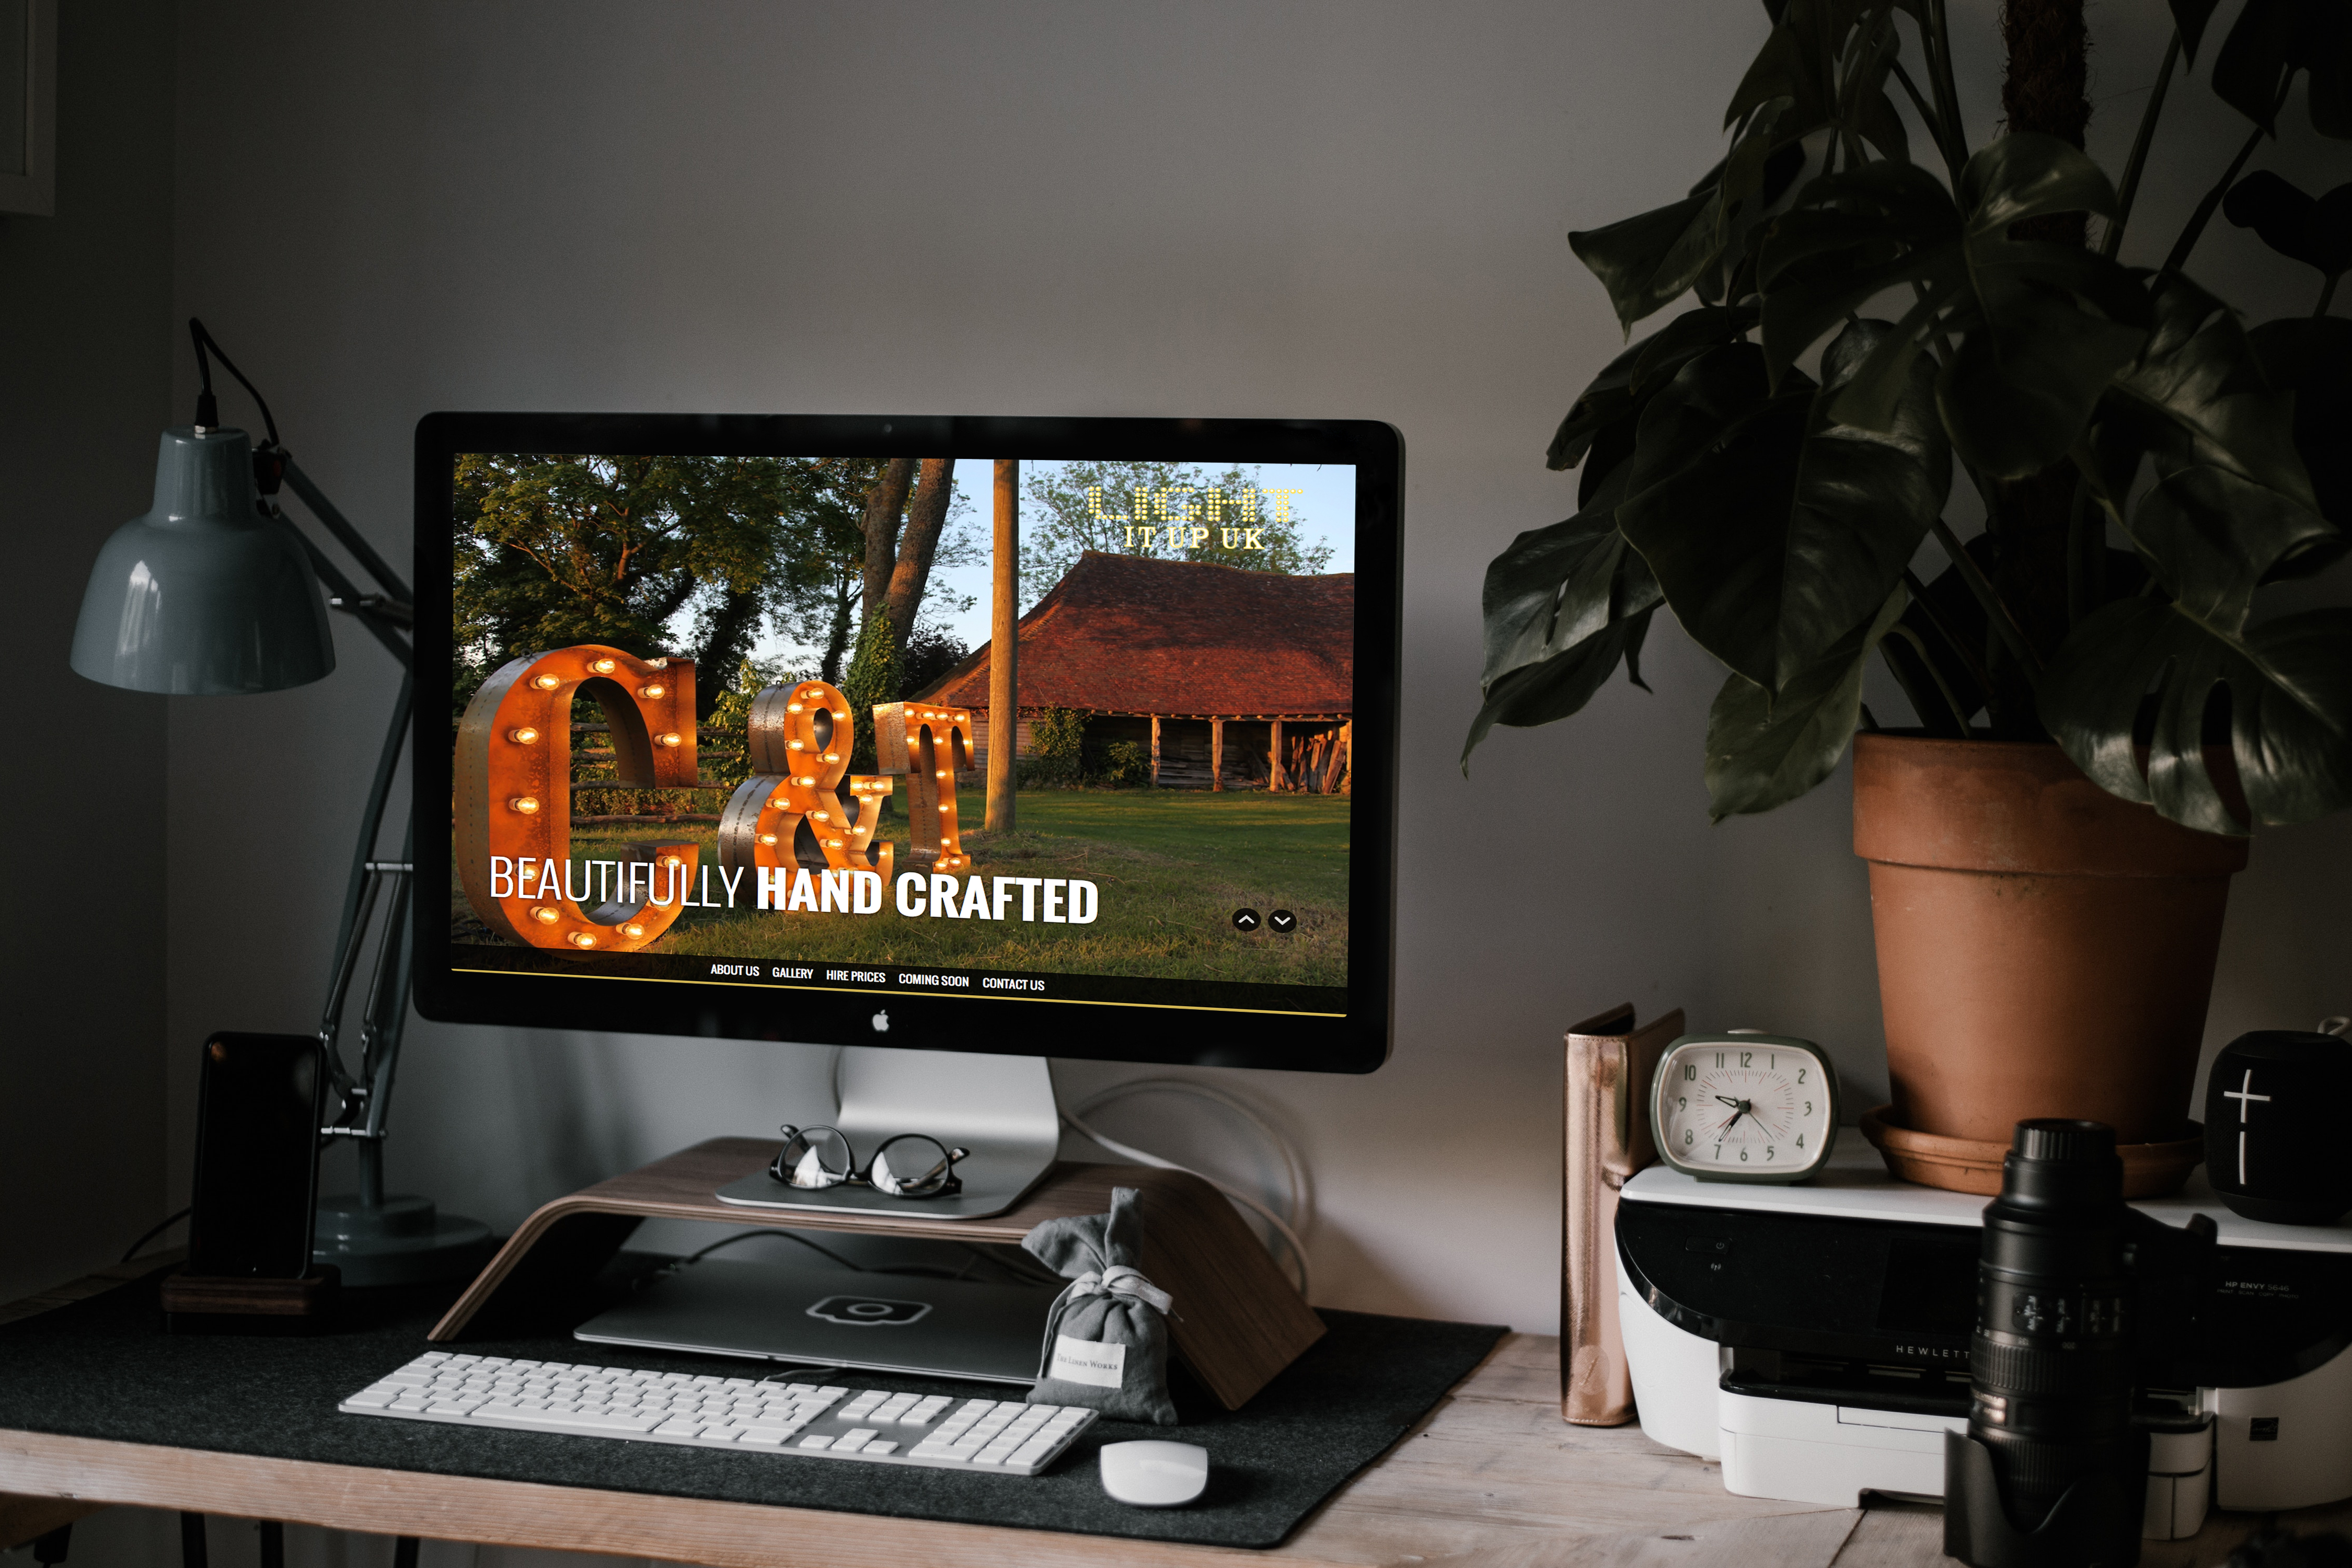 An image showing a desktop computer sitting on a work desk e and showing the homepage of the Light It Up UK website.